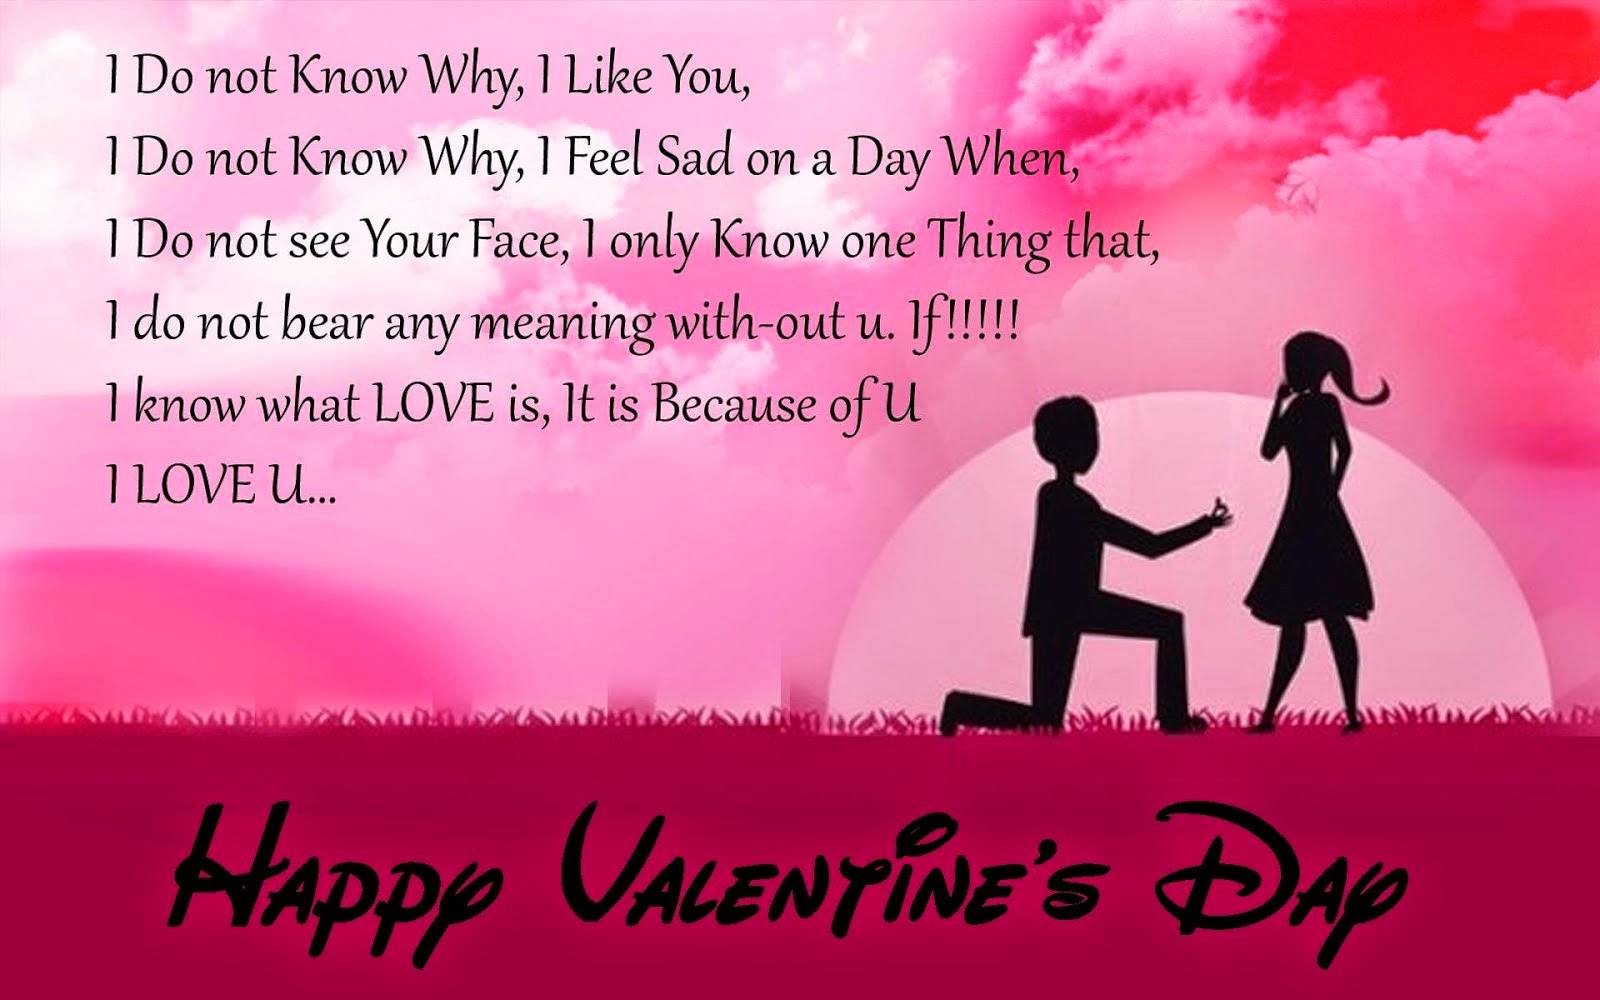 valentinesday special romantic Messages 1